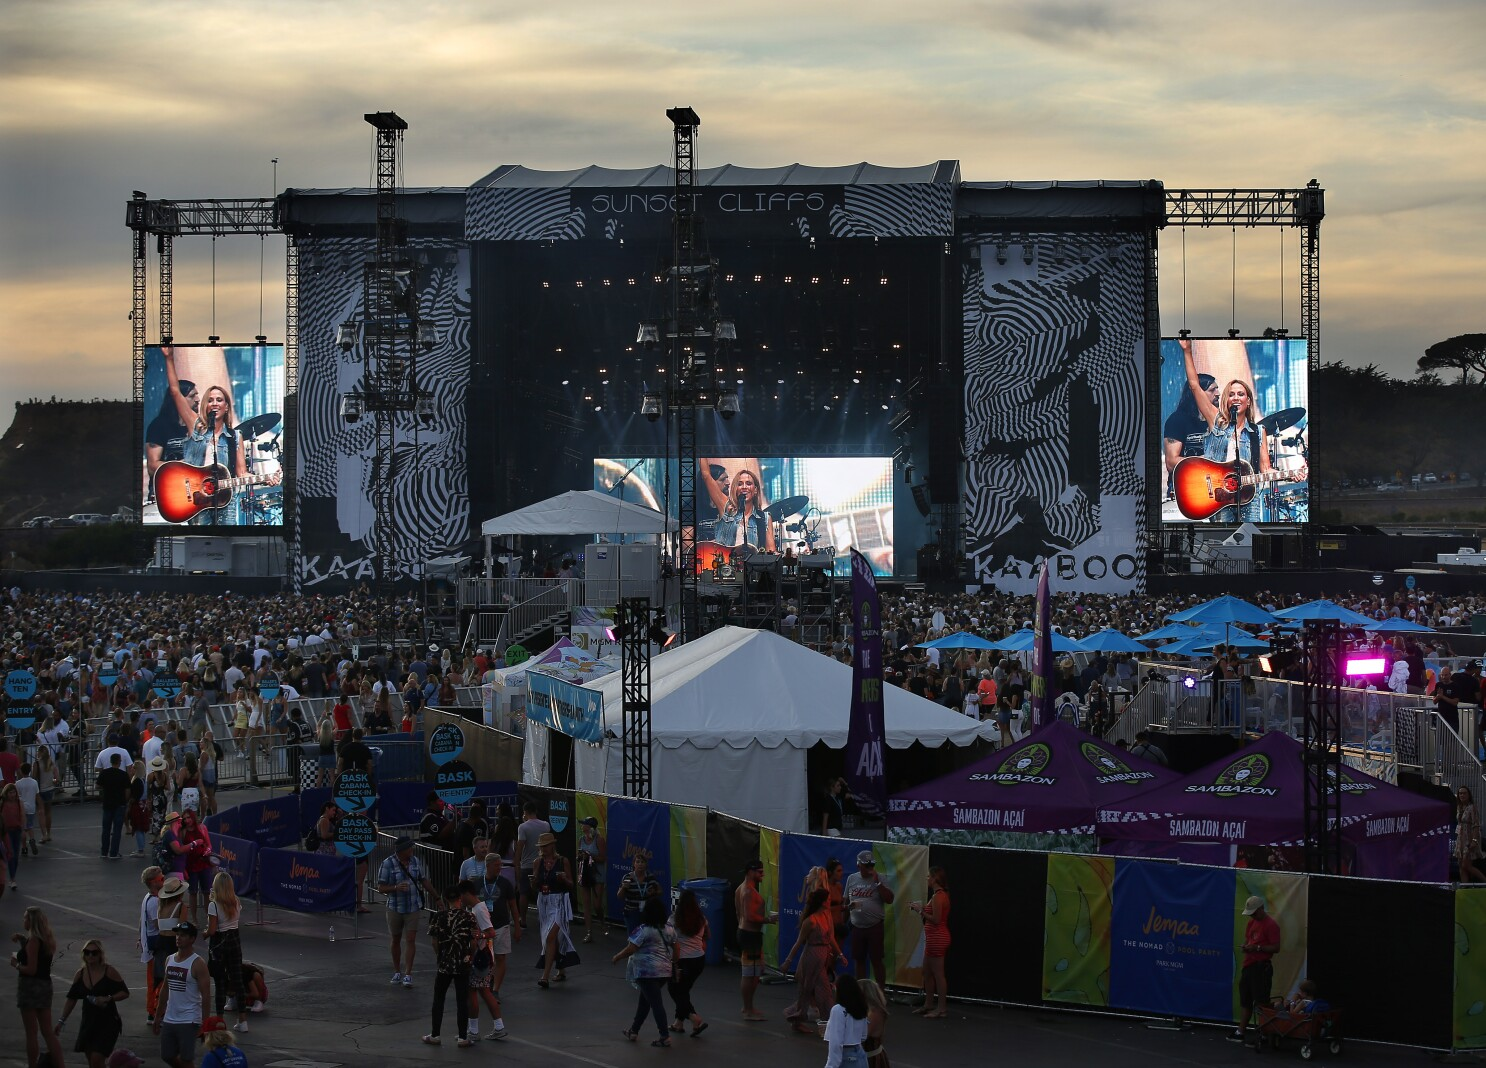 Fairgrounds 'considering all options' against KAABOO